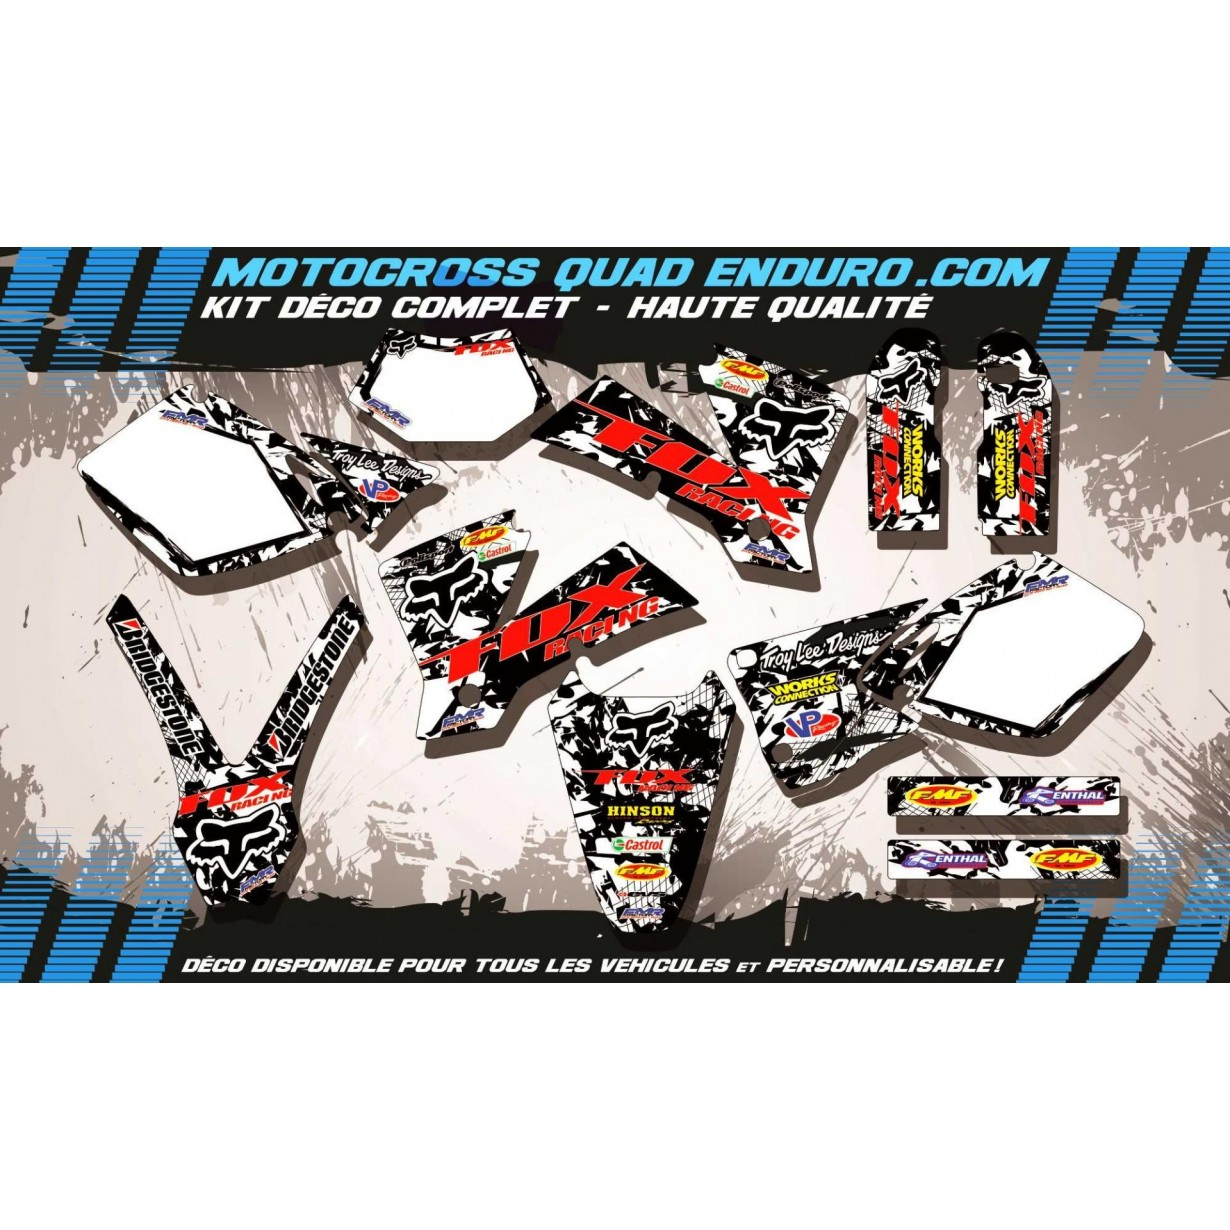 KIT DÉCO Perso EXC 450-525 03 FOX MA9F